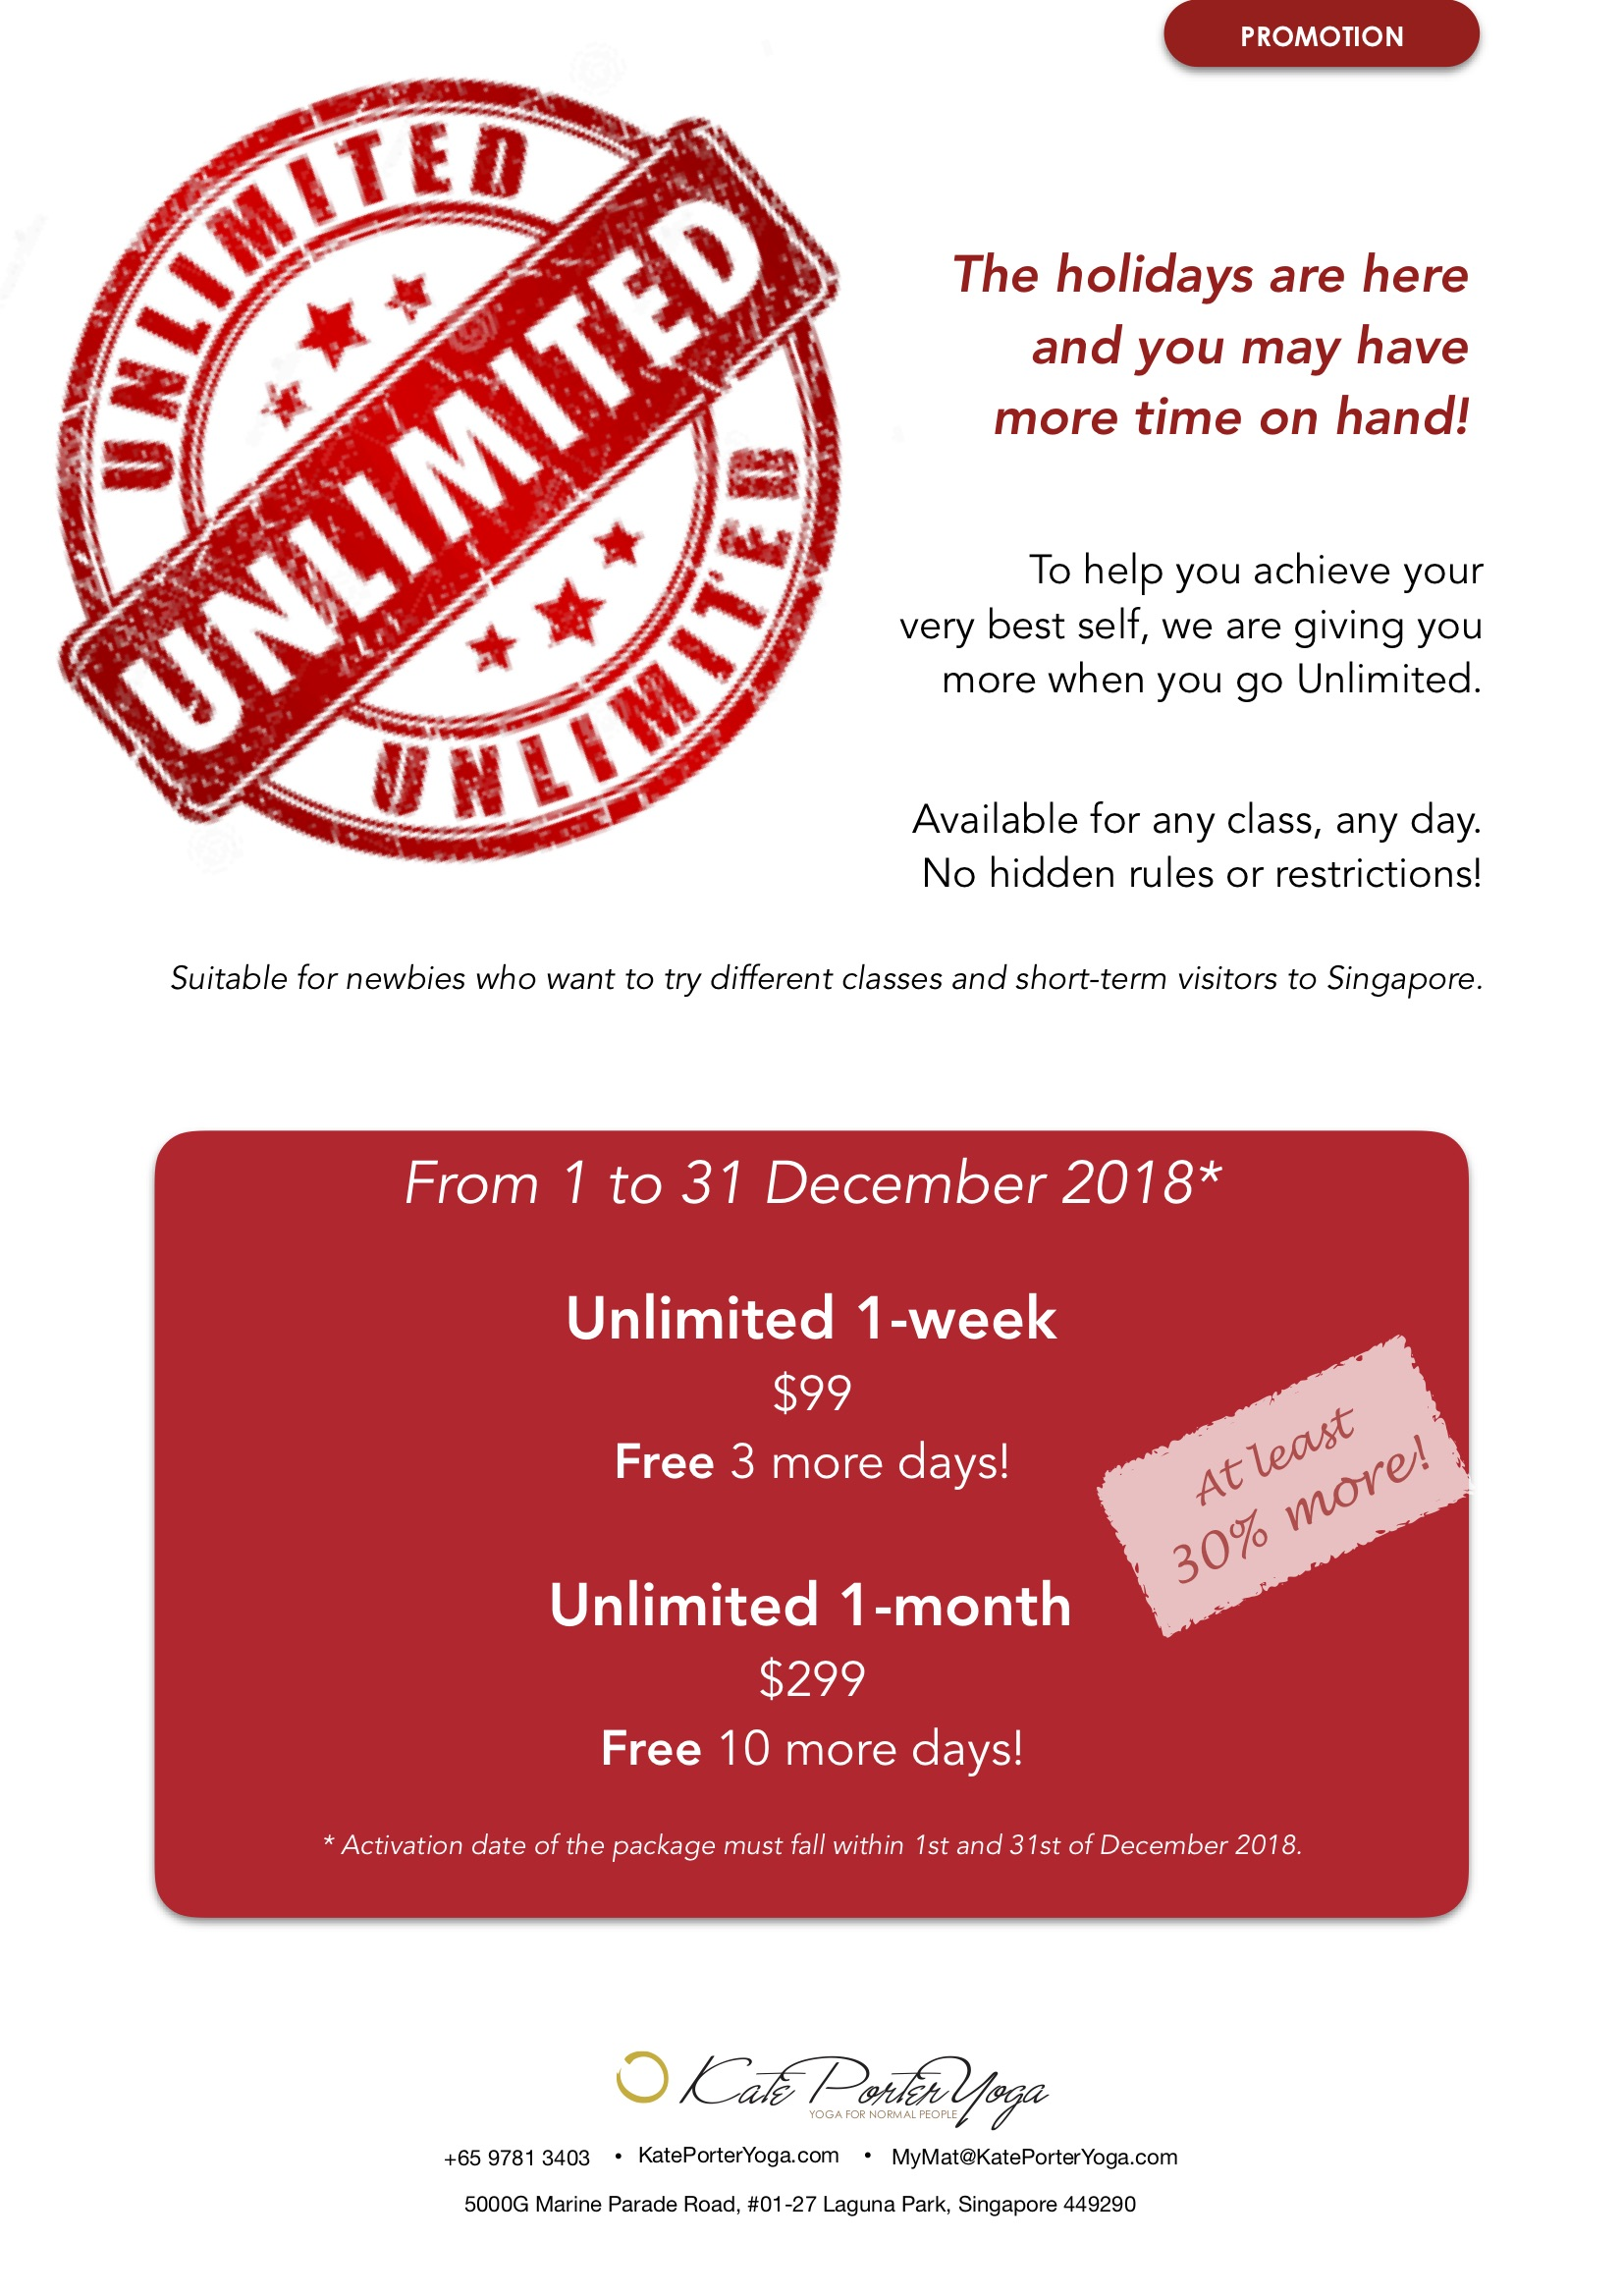 Unlimited promotion (December 2018)